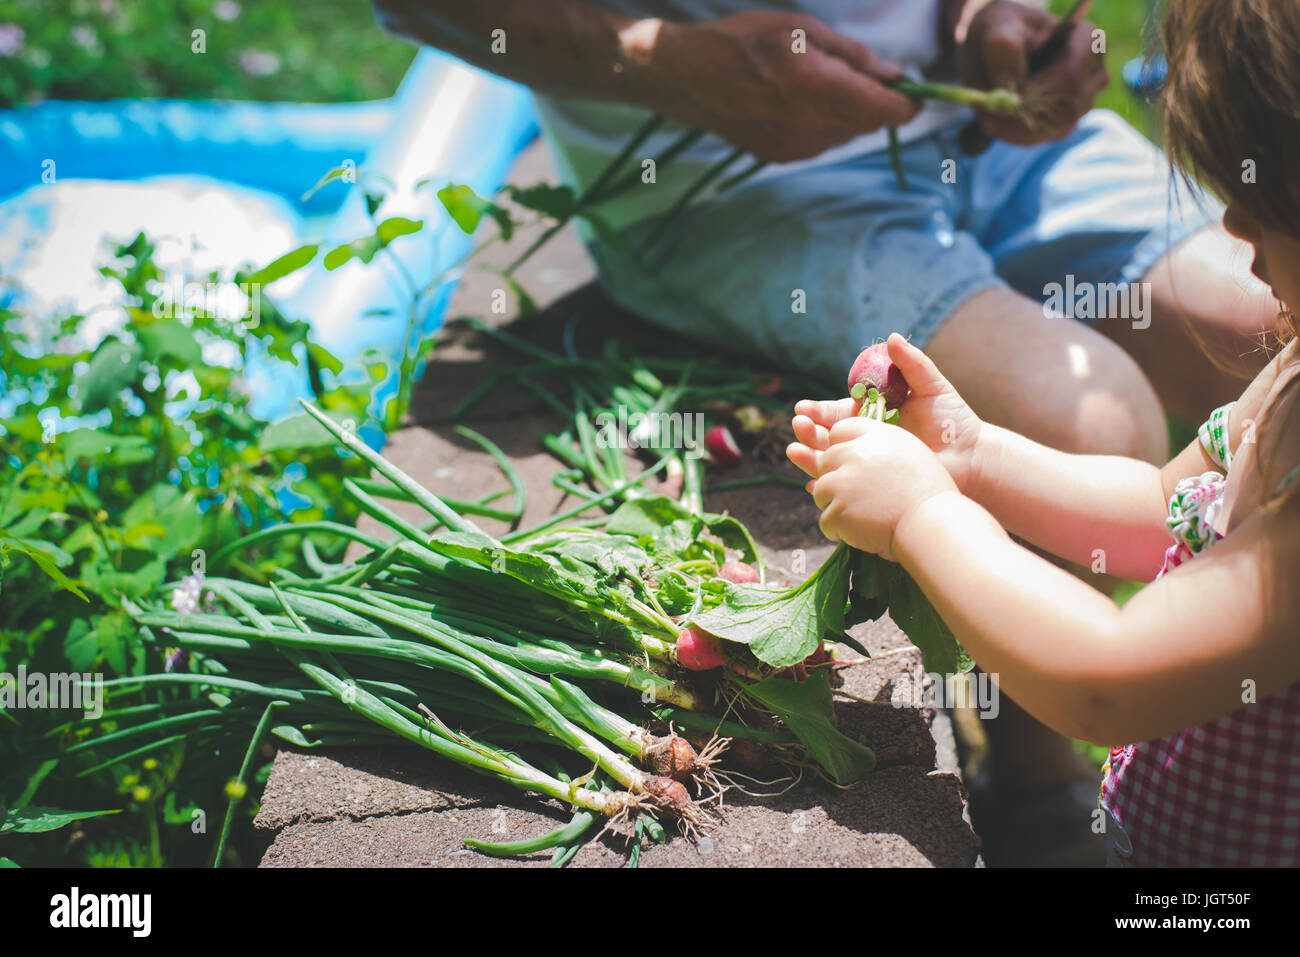 A grandfather cuts up vegetables fresh from the garden with his  granddaughter. Stock Photo